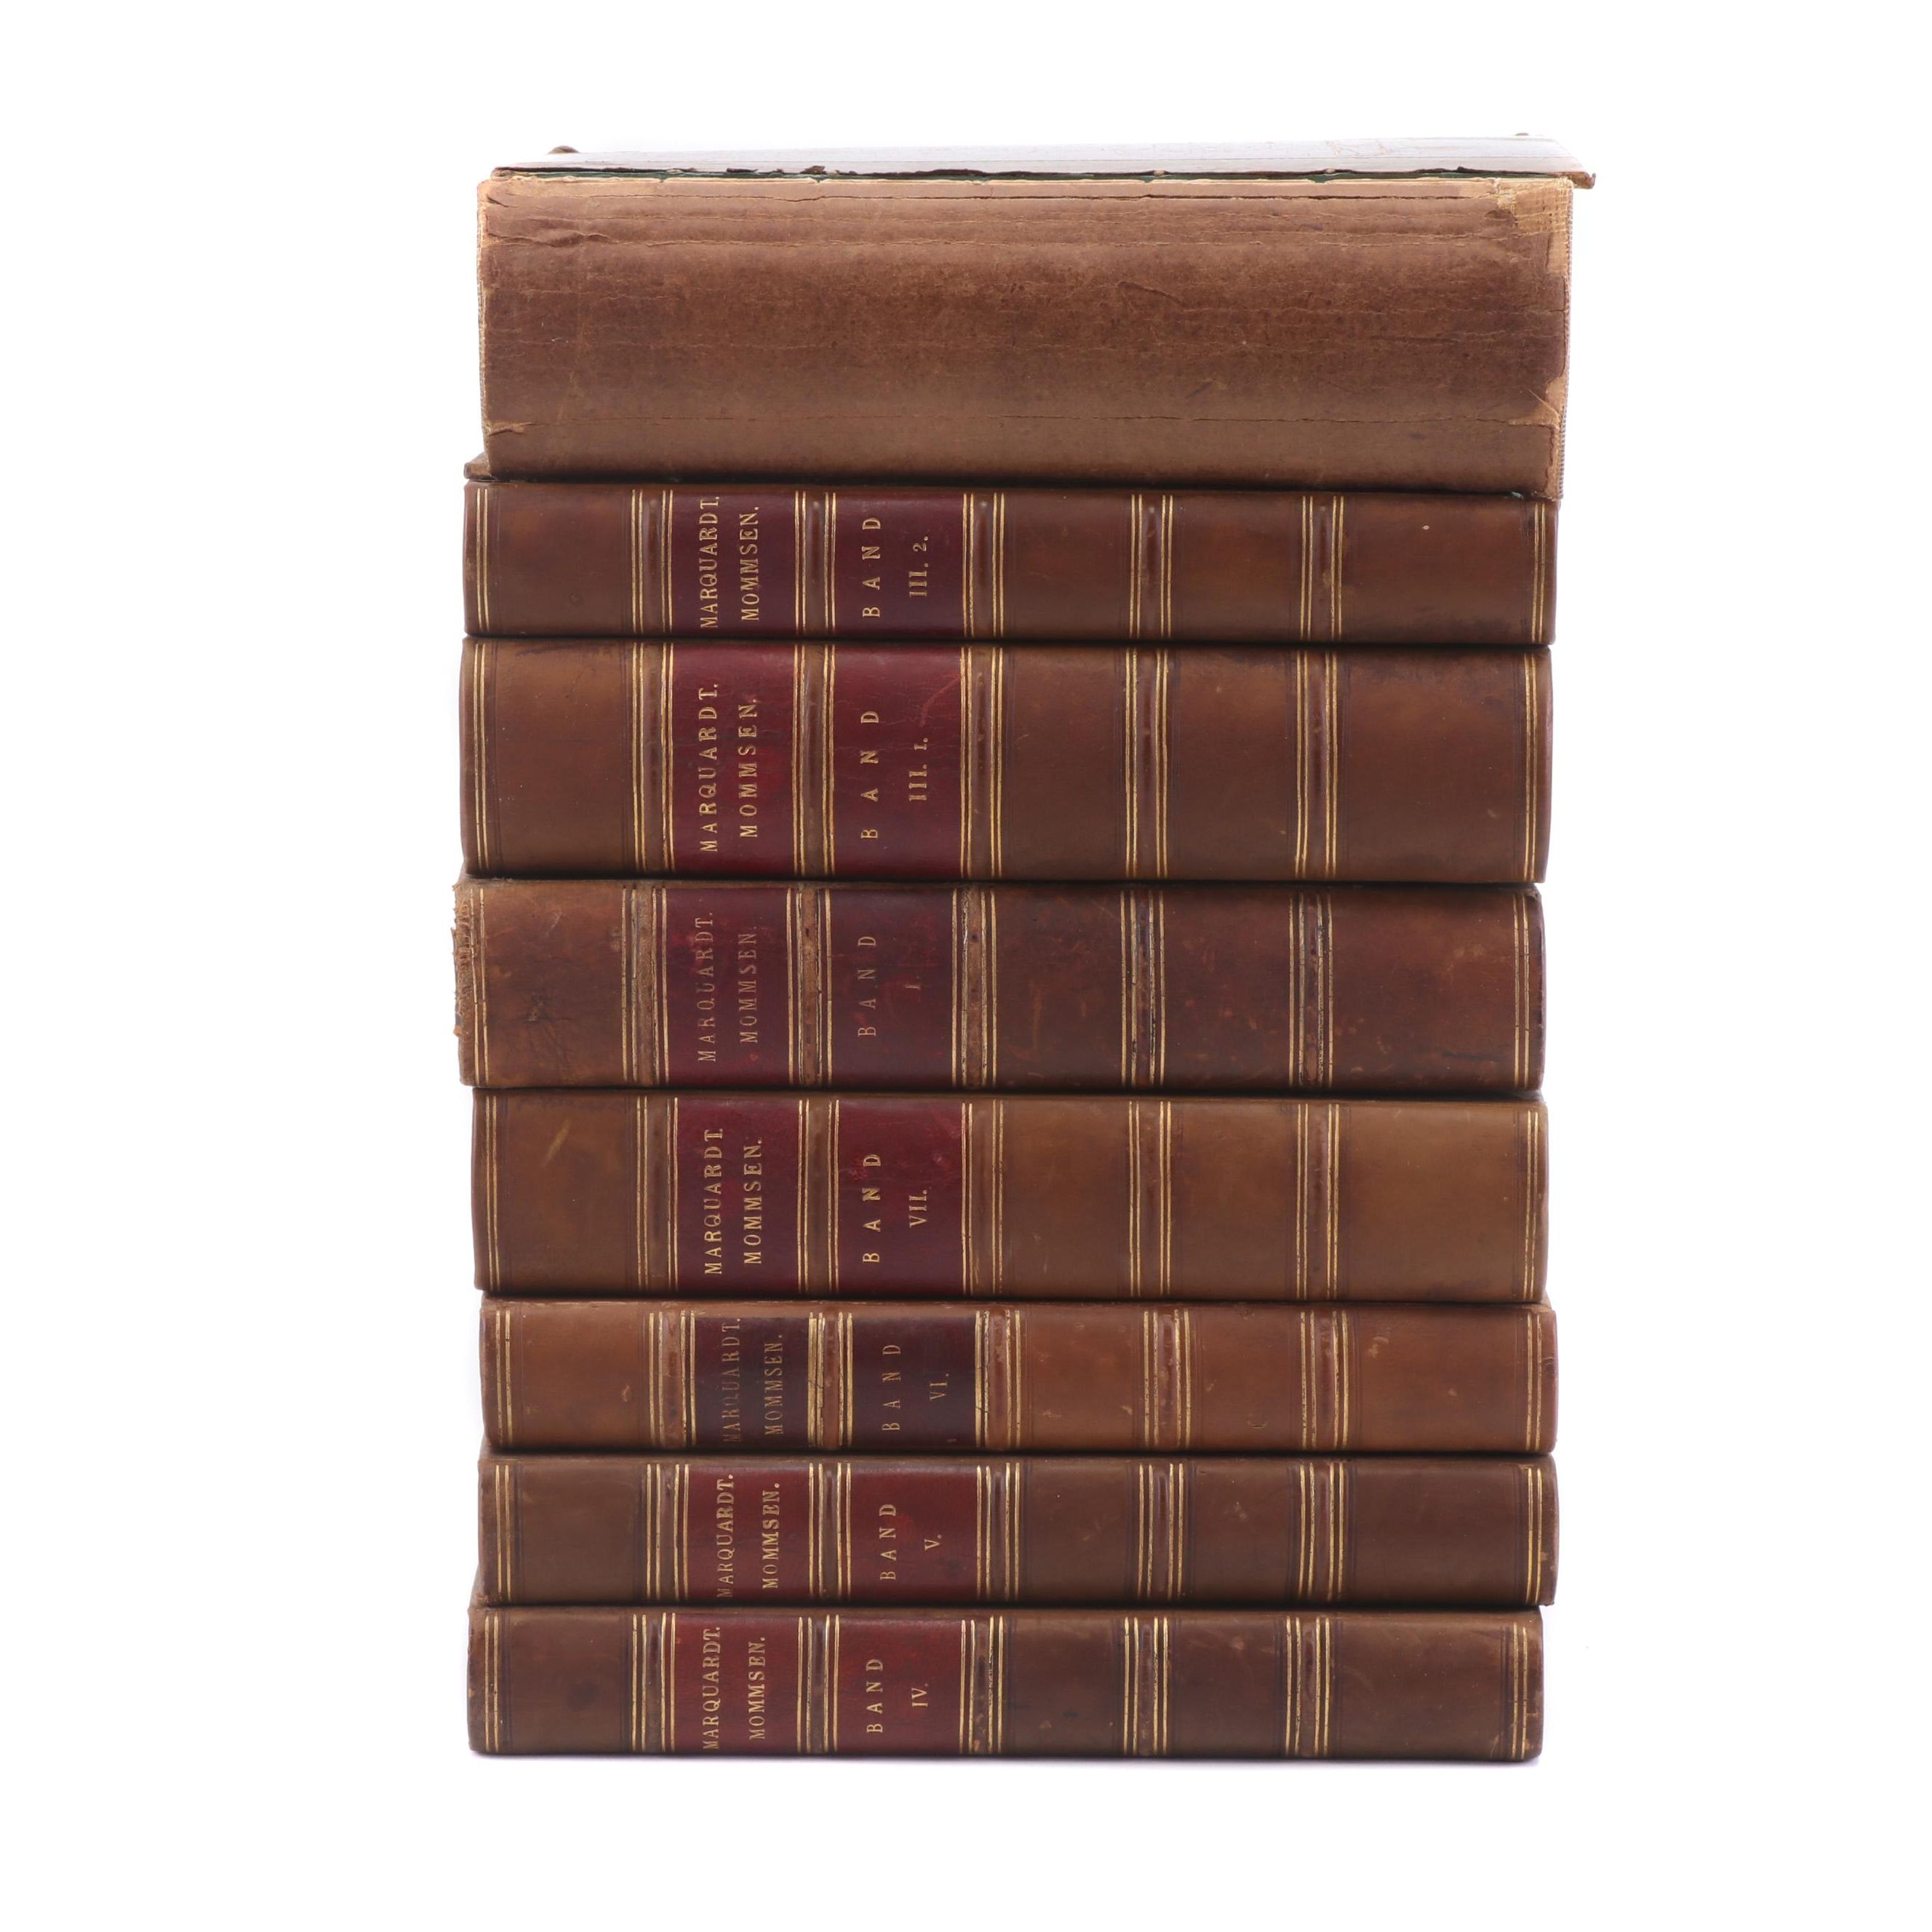 German Language Books on Roman Law and Culture, Late 19th Century